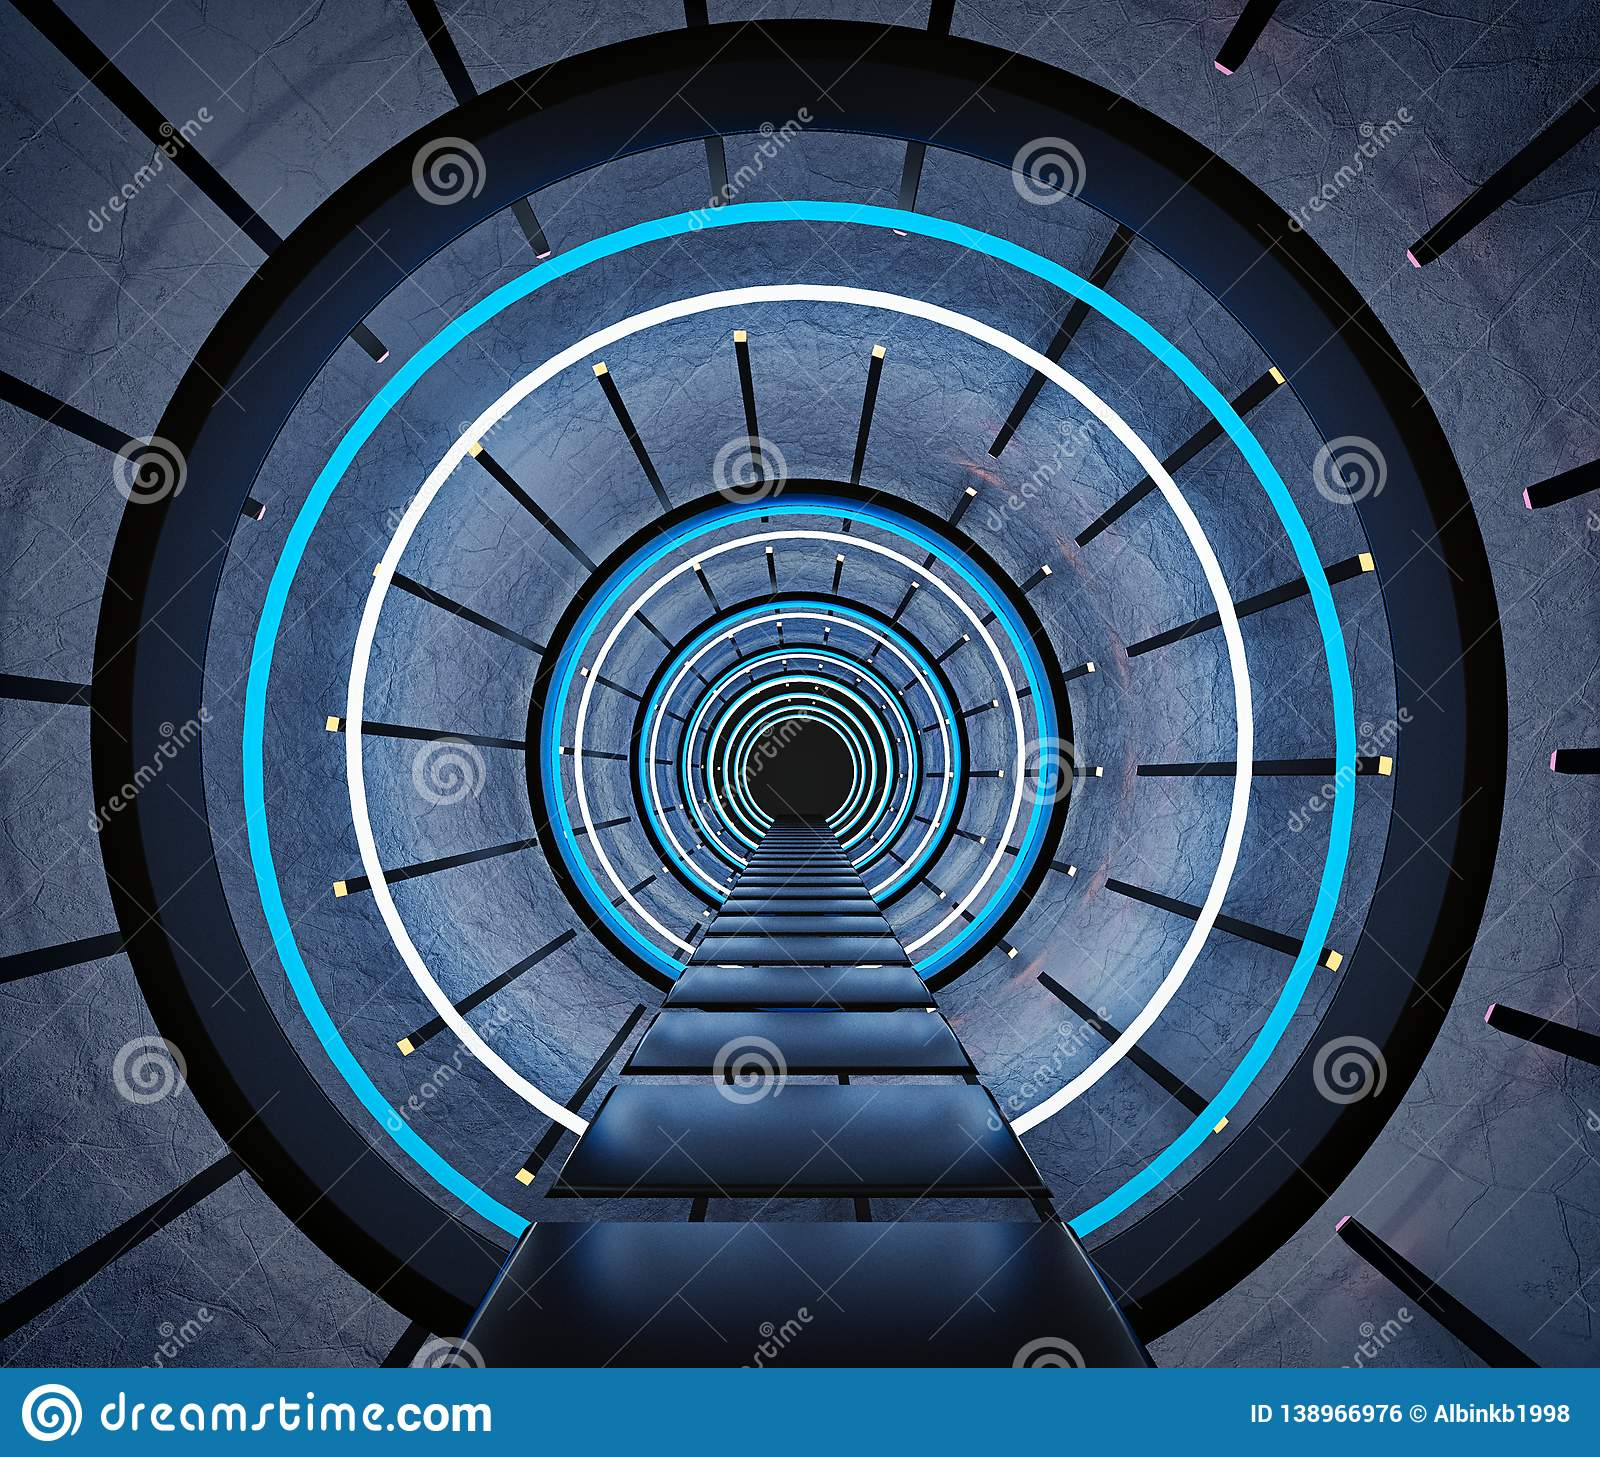 Abstract Futuristic Tunnel 3d Rendering Stock Illustration